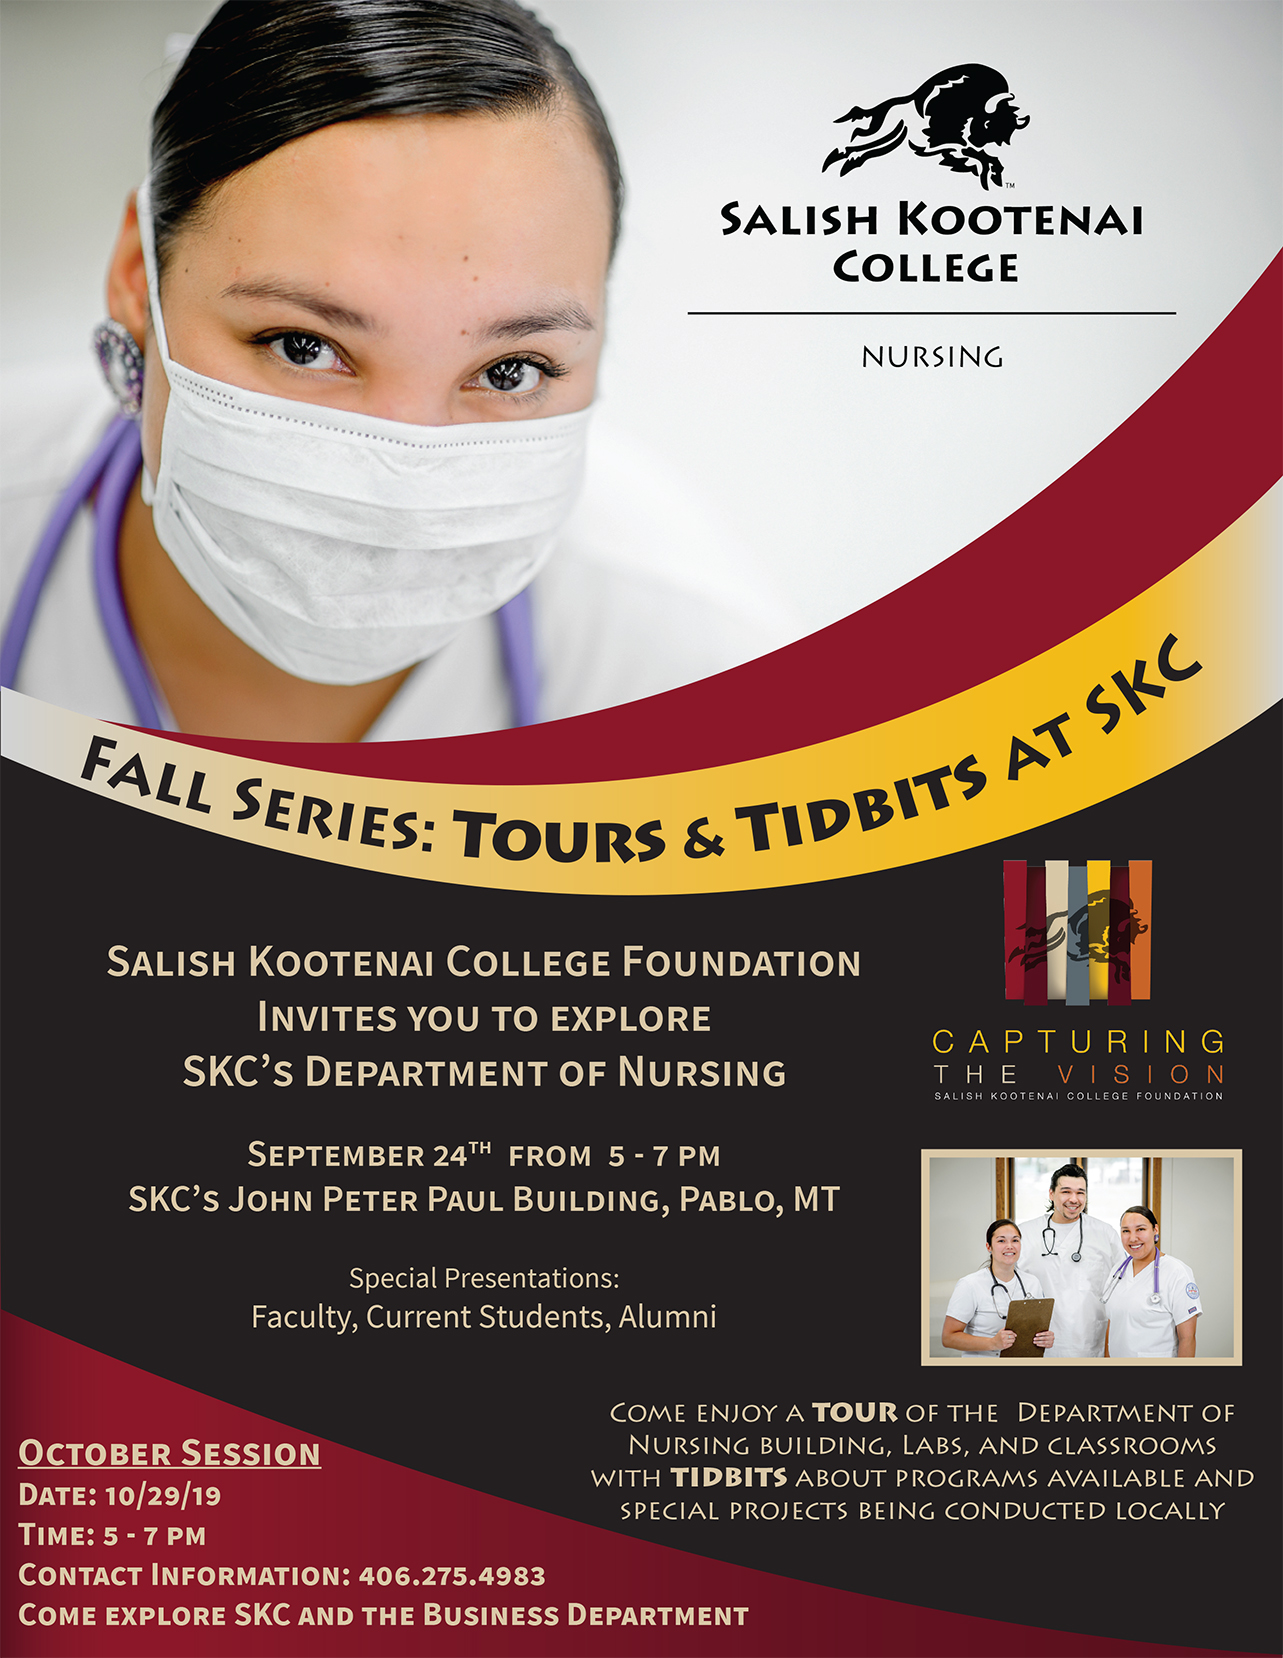 Fall Series Tours and Tidbits September Nursing